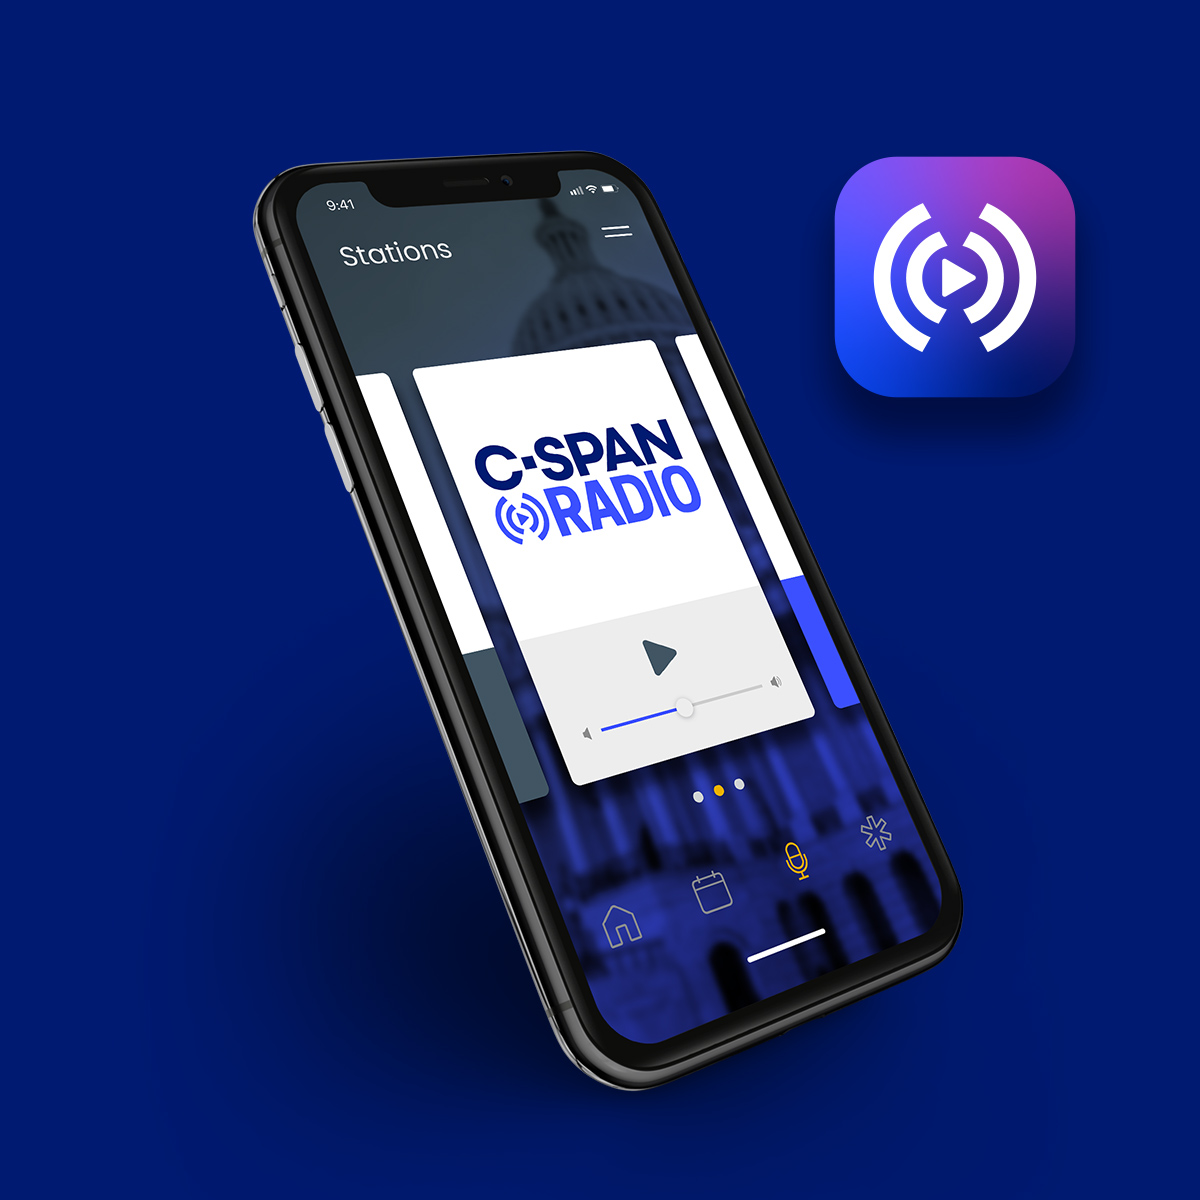 Cspan Radio application